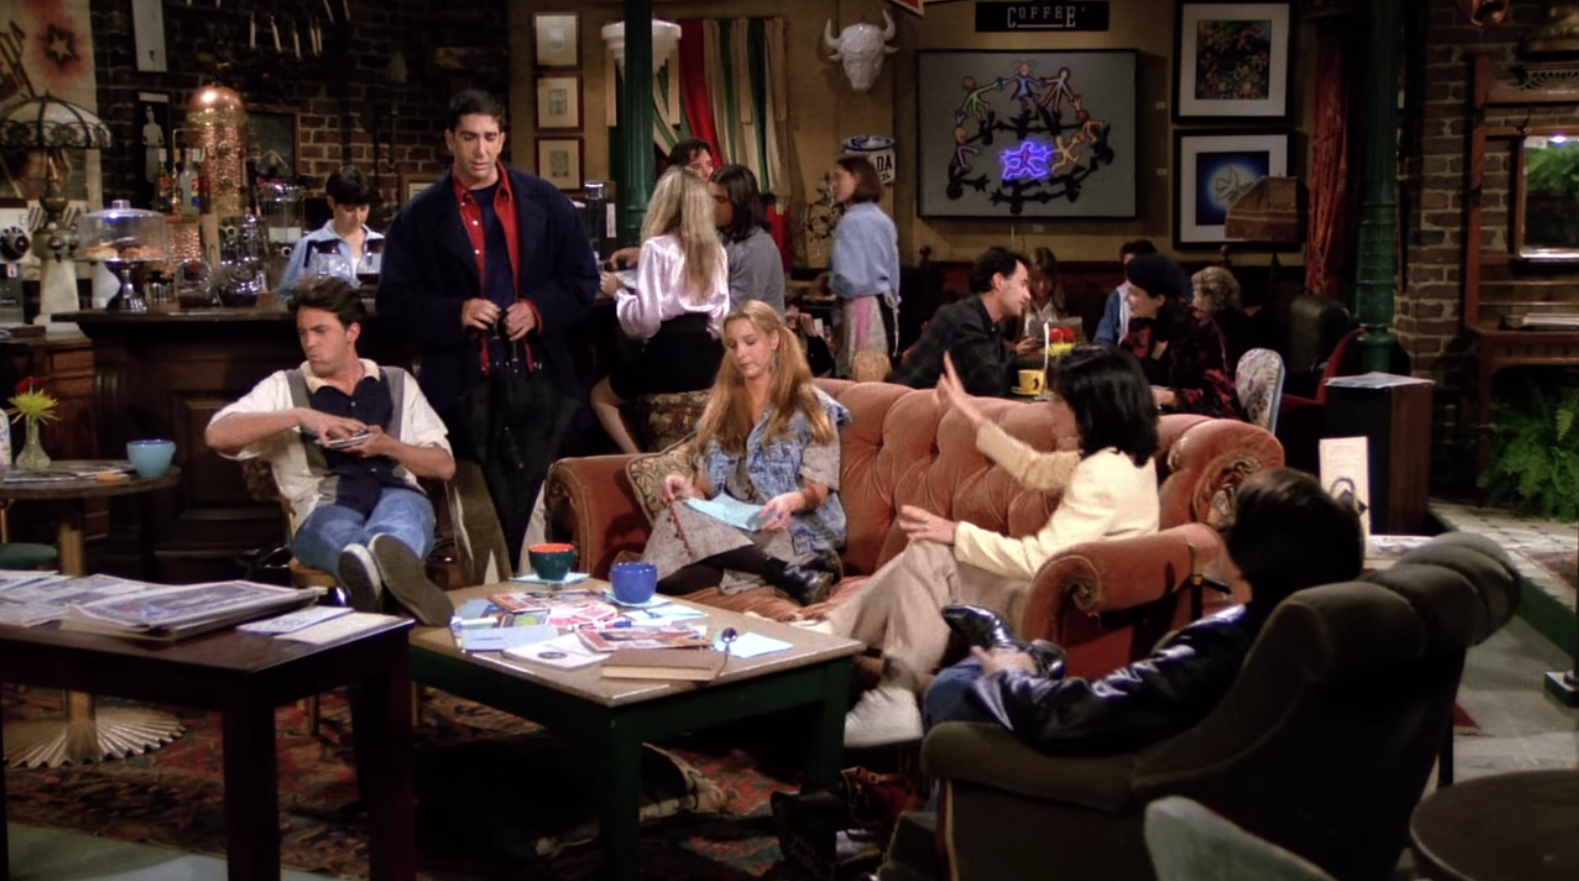 These Iconic 'Friends' Locations Are Being Recreated — Here's How You Can Visit